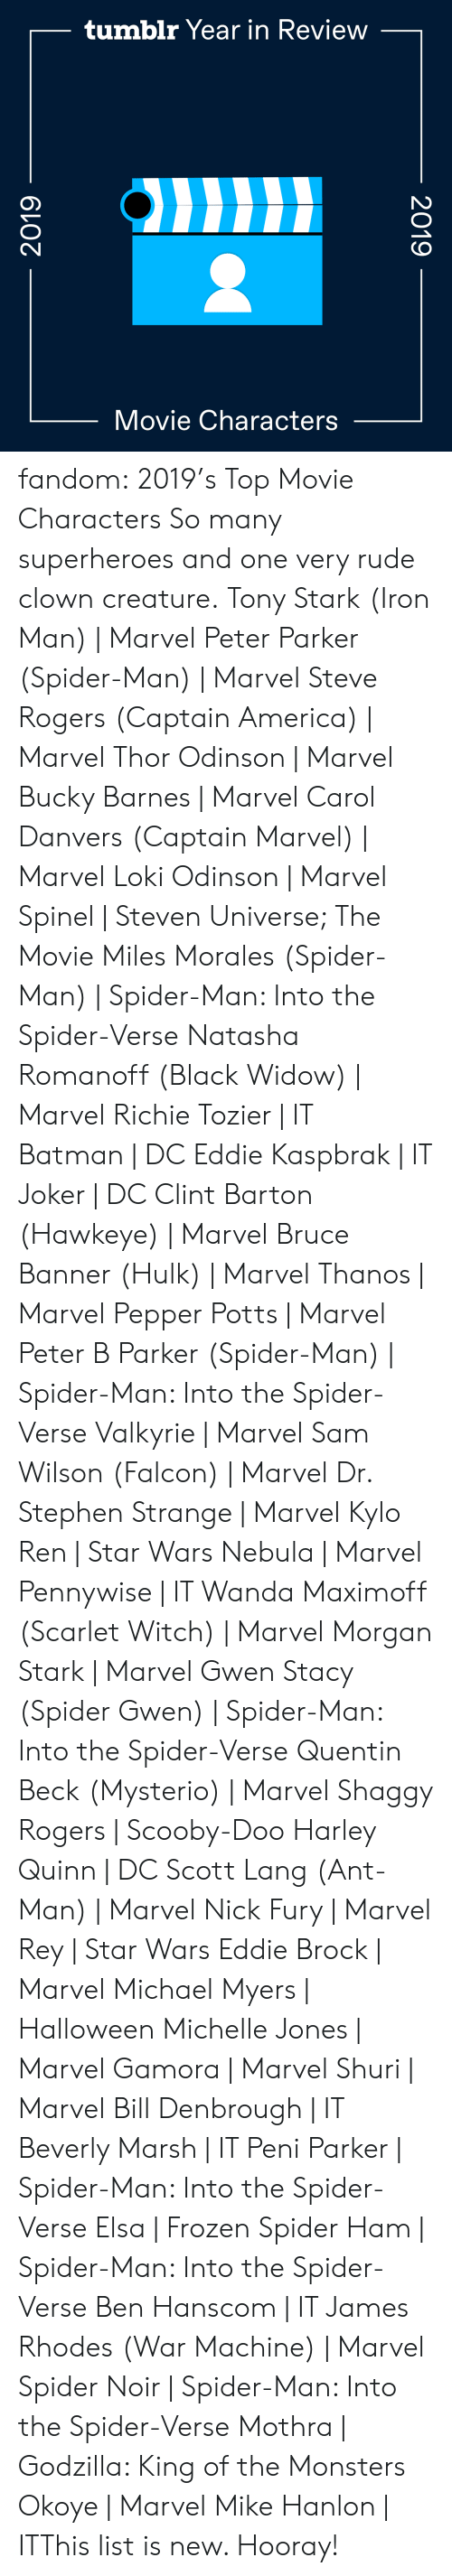 America, Batman, and Elsa: tumblr Year in Review  Movie Characters  2019  2019 fandom:  2019's Top Movie Characters  So many superheroes and one very rude clown creature.  Tony Stark (Iron Man) | Marvel  Peter Parker (Spider-Man) | Marvel  Steve Rogers (Captain America) | Marvel  Thor Odinson | Marvel  Bucky Barnes | Marvel  Carol Danvers (Captain Marvel) | Marvel  Loki Odinson | Marvel  Spinel | Steven Universe; The Movie  Miles Morales (Spider-Man) | Spider-Man: Into the Spider-Verse  Natasha Romanoff (Black Widow) | Marvel  Richie Tozier | IT  Batman | DC  Eddie Kaspbrak | IT  Joker | DC  Clint Barton (Hawkeye) | Marvel  Bruce Banner (Hulk) | Marvel  Thanos | Marvel  Pepper Potts | Marvel  Peter B Parker (Spider-Man) | Spider-Man: Into the Spider-Verse  Valkyrie | Marvel  Sam Wilson (Falcon) | Marvel  Dr. Stephen Strange | Marvel  Kylo Ren | Star Wars  Nebula | Marvel  Pennywise | IT  Wanda Maximoff (Scarlet Witch) | Marvel  Morgan Stark | Marvel  Gwen Stacy (Spider Gwen) | Spider-Man: Into the Spider-Verse  Quentin Beck (Mysterio) | Marvel  Shaggy Rogers | Scooby-Doo  Harley Quinn | DC  Scott Lang (Ant-Man) | Marvel  Nick Fury | Marvel  Rey | Star Wars  Eddie Brock | Marvel  Michael Myers | Halloween  Michelle Jones | Marvel  Gamora | Marvel  Shuri | Marvel  Bill Denbrough | IT  Beverly Marsh | IT  Peni Parker | Spider-Man: Into the Spider-Verse  Elsa | Frozen  Spider Ham | Spider-Man: Into the Spider-Verse  Ben Hanscom | IT  James Rhodes (War Machine) | Marvel  Spider Noir | Spider-Man: Into the Spider-Verse  Mothra | Godzilla: King of the Monsters  Okoye | Marvel Mike Hanlon | ITThis list is new. Hooray!